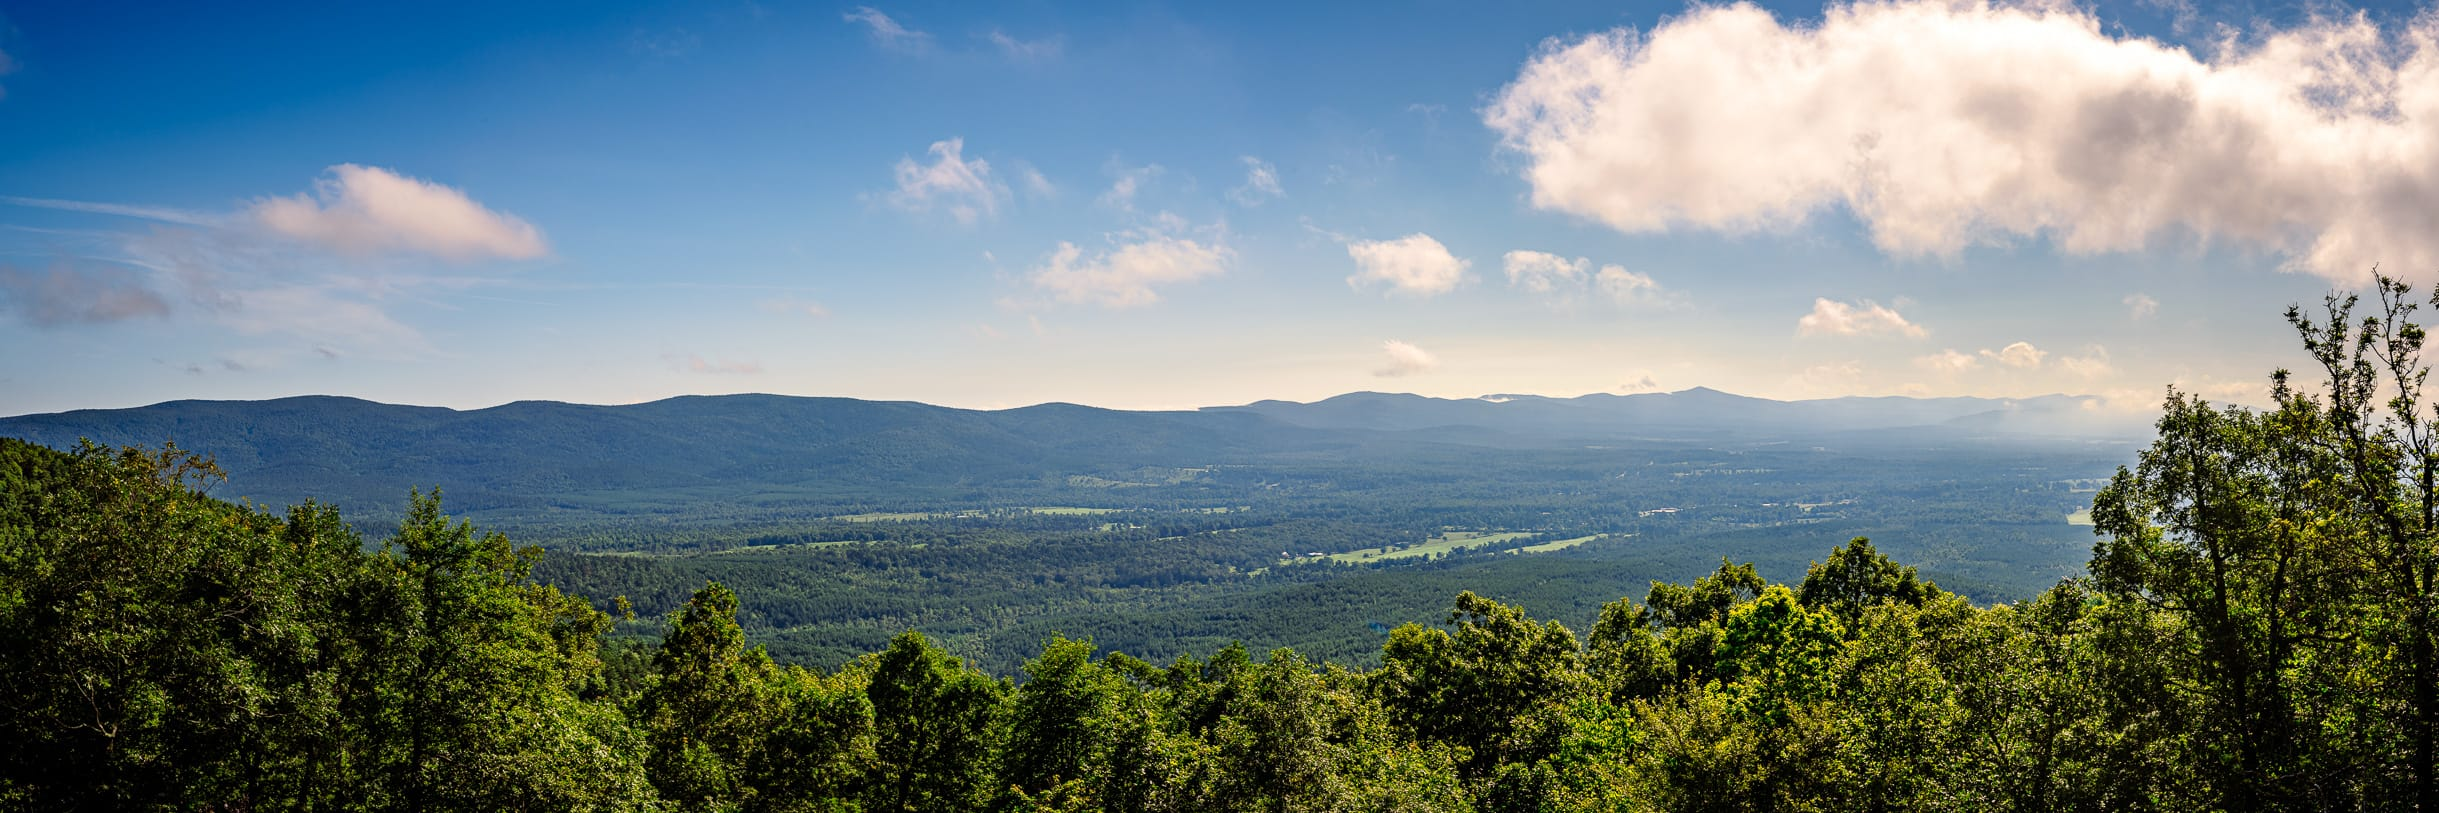 The Ouachita Mountains stretch into the distance as seen from the Talimena National Scenic Byway, Arkansas.